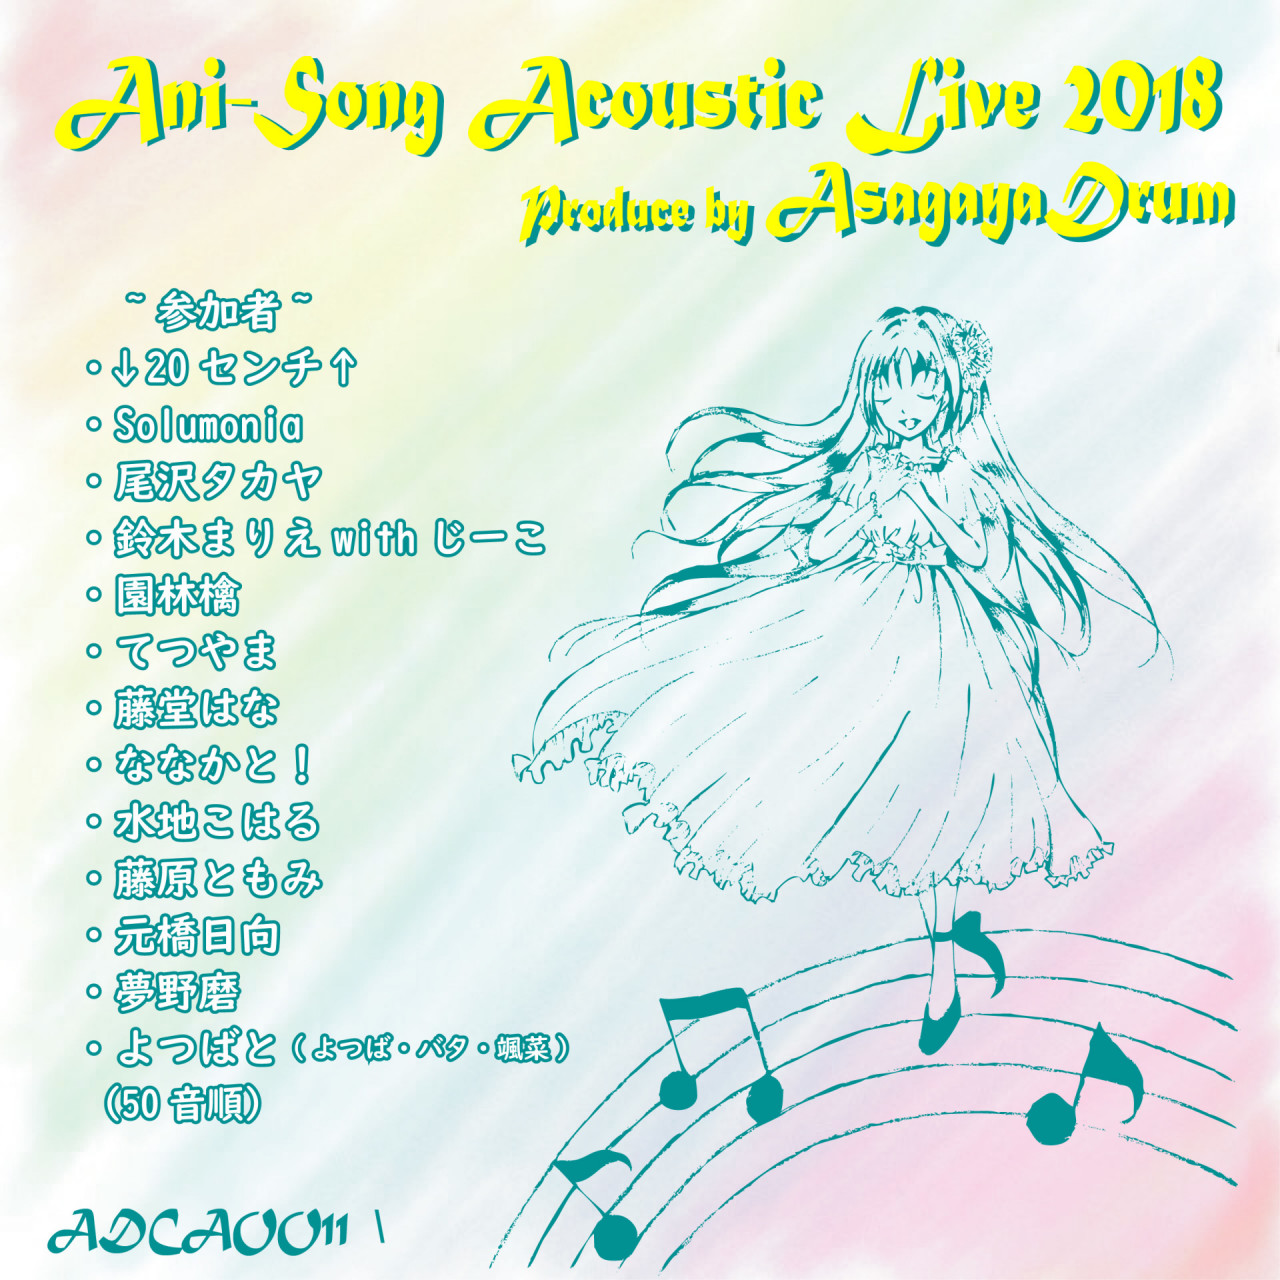 Ani-Song Acoustic Live 2018